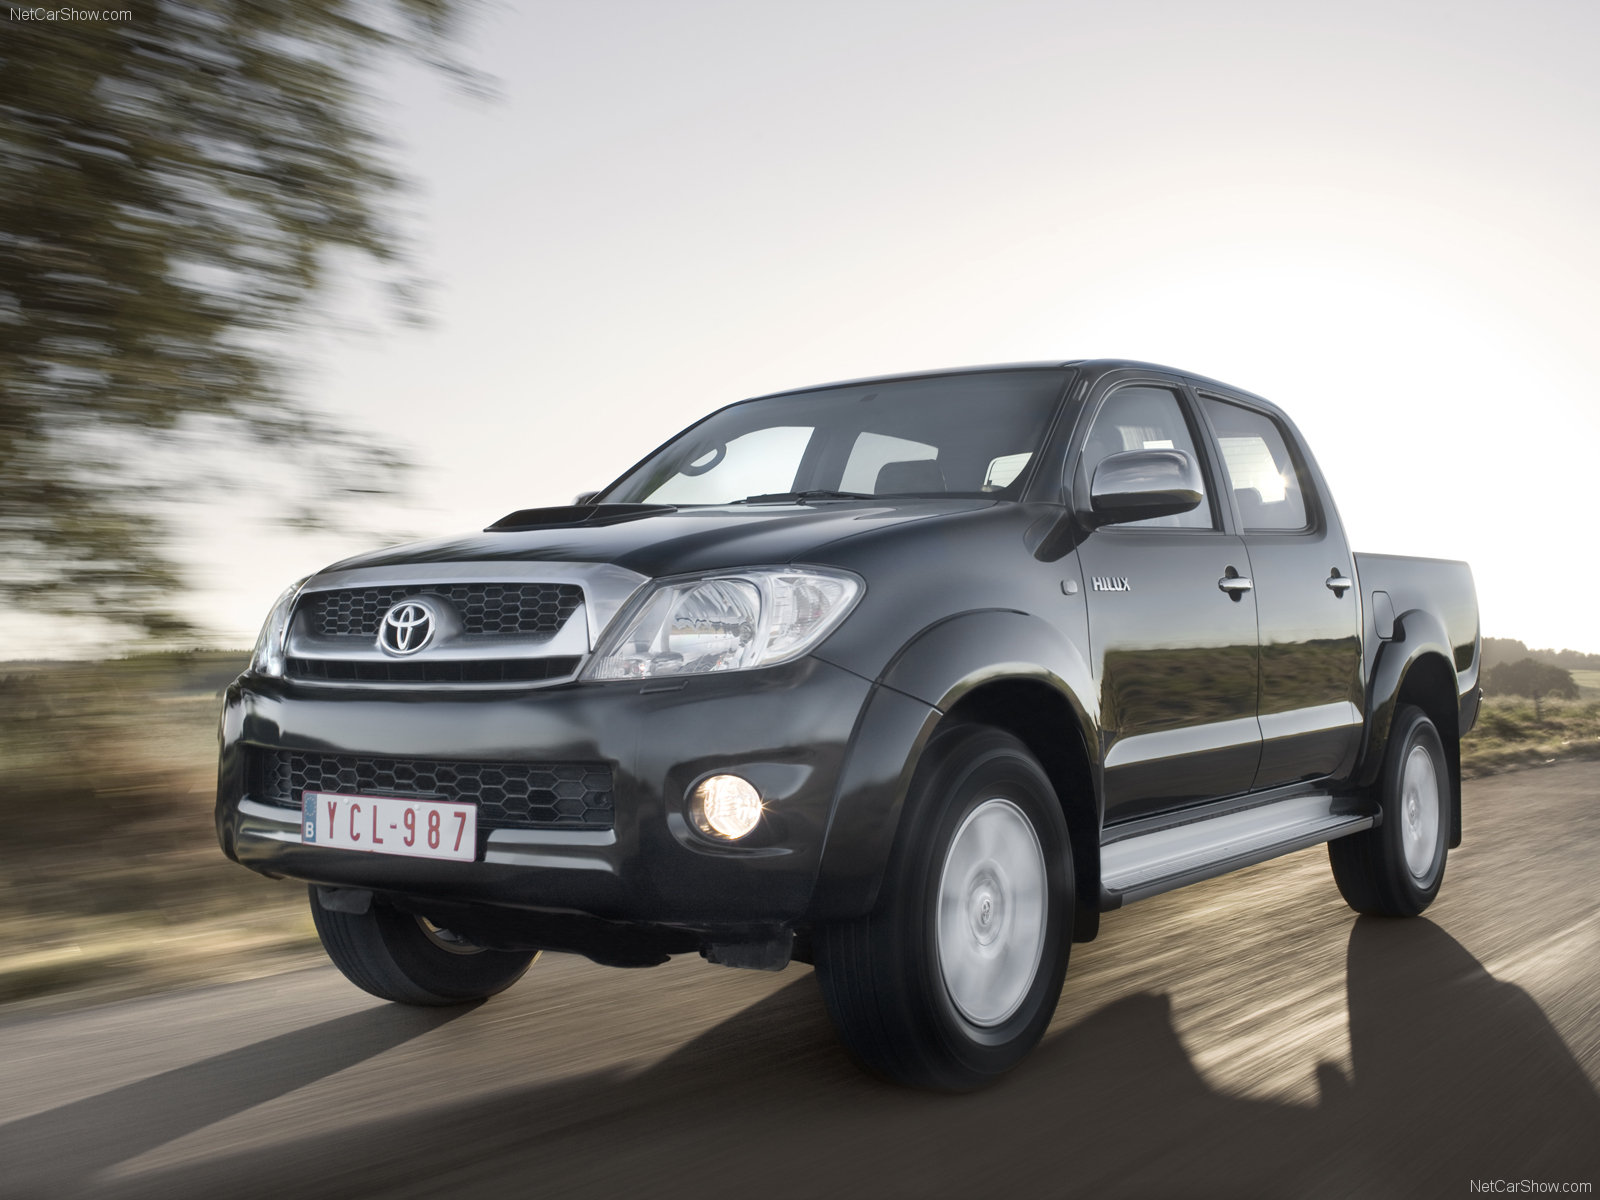 3dtuning Of Toyota Hilux Pickup 2009 3dtuning Com Unique